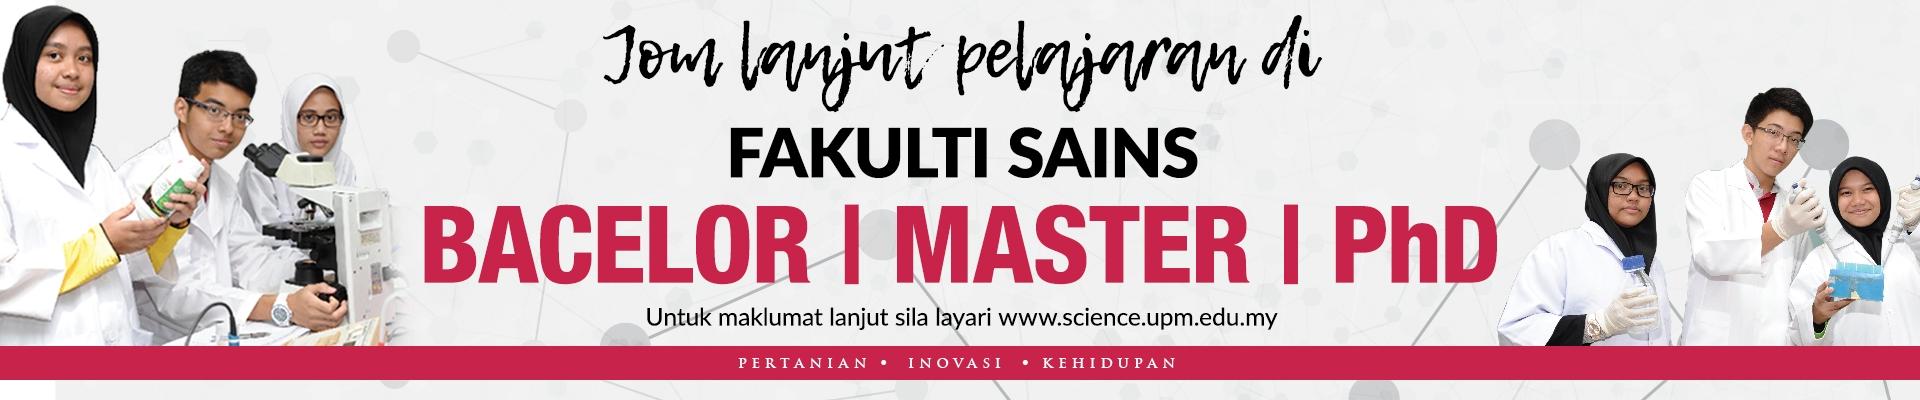 LET'S STUDY AT FACULTY OF SCIENCE UPM